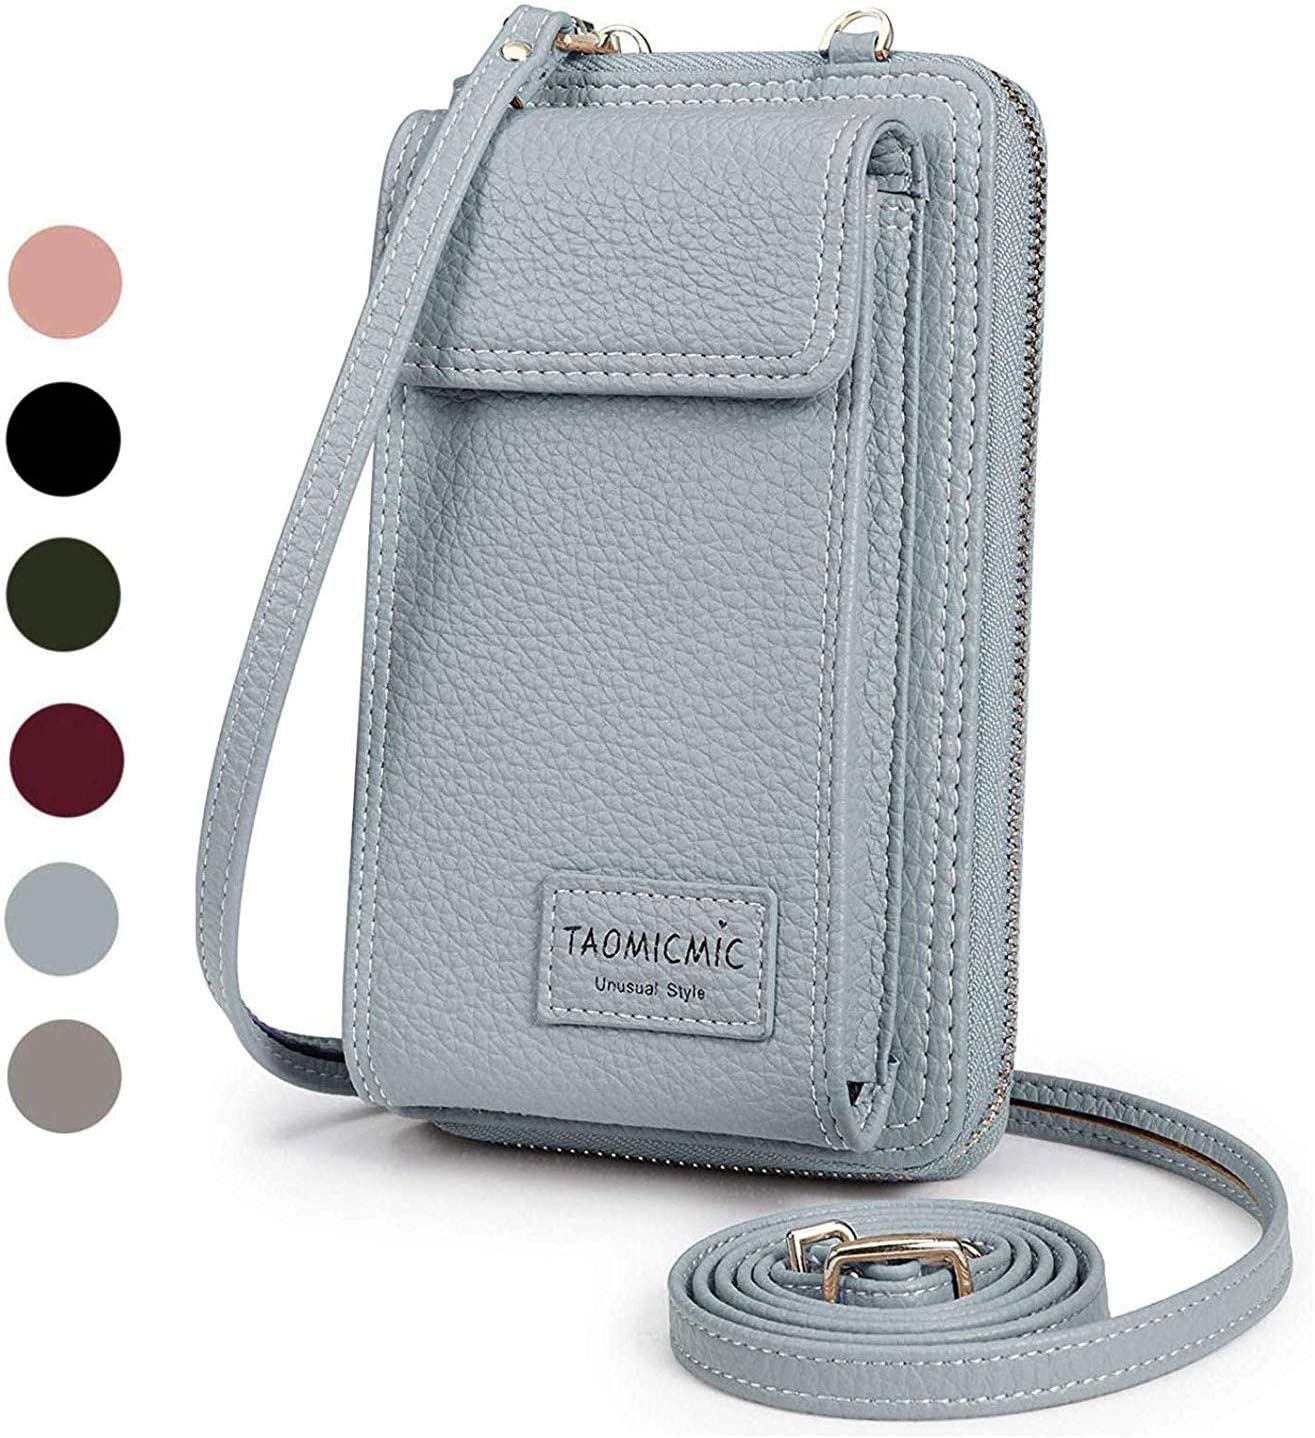 Women Crossbody Cell Phone Bag Small Shoulder Purse Leather Travel RFID Card Slots Wallet Case Handbag Phone Pocket Baggap Clutch for iPhone 11 Se 2020 11 Pro Xr X Xs Max 8/7/6 Plus Samsung